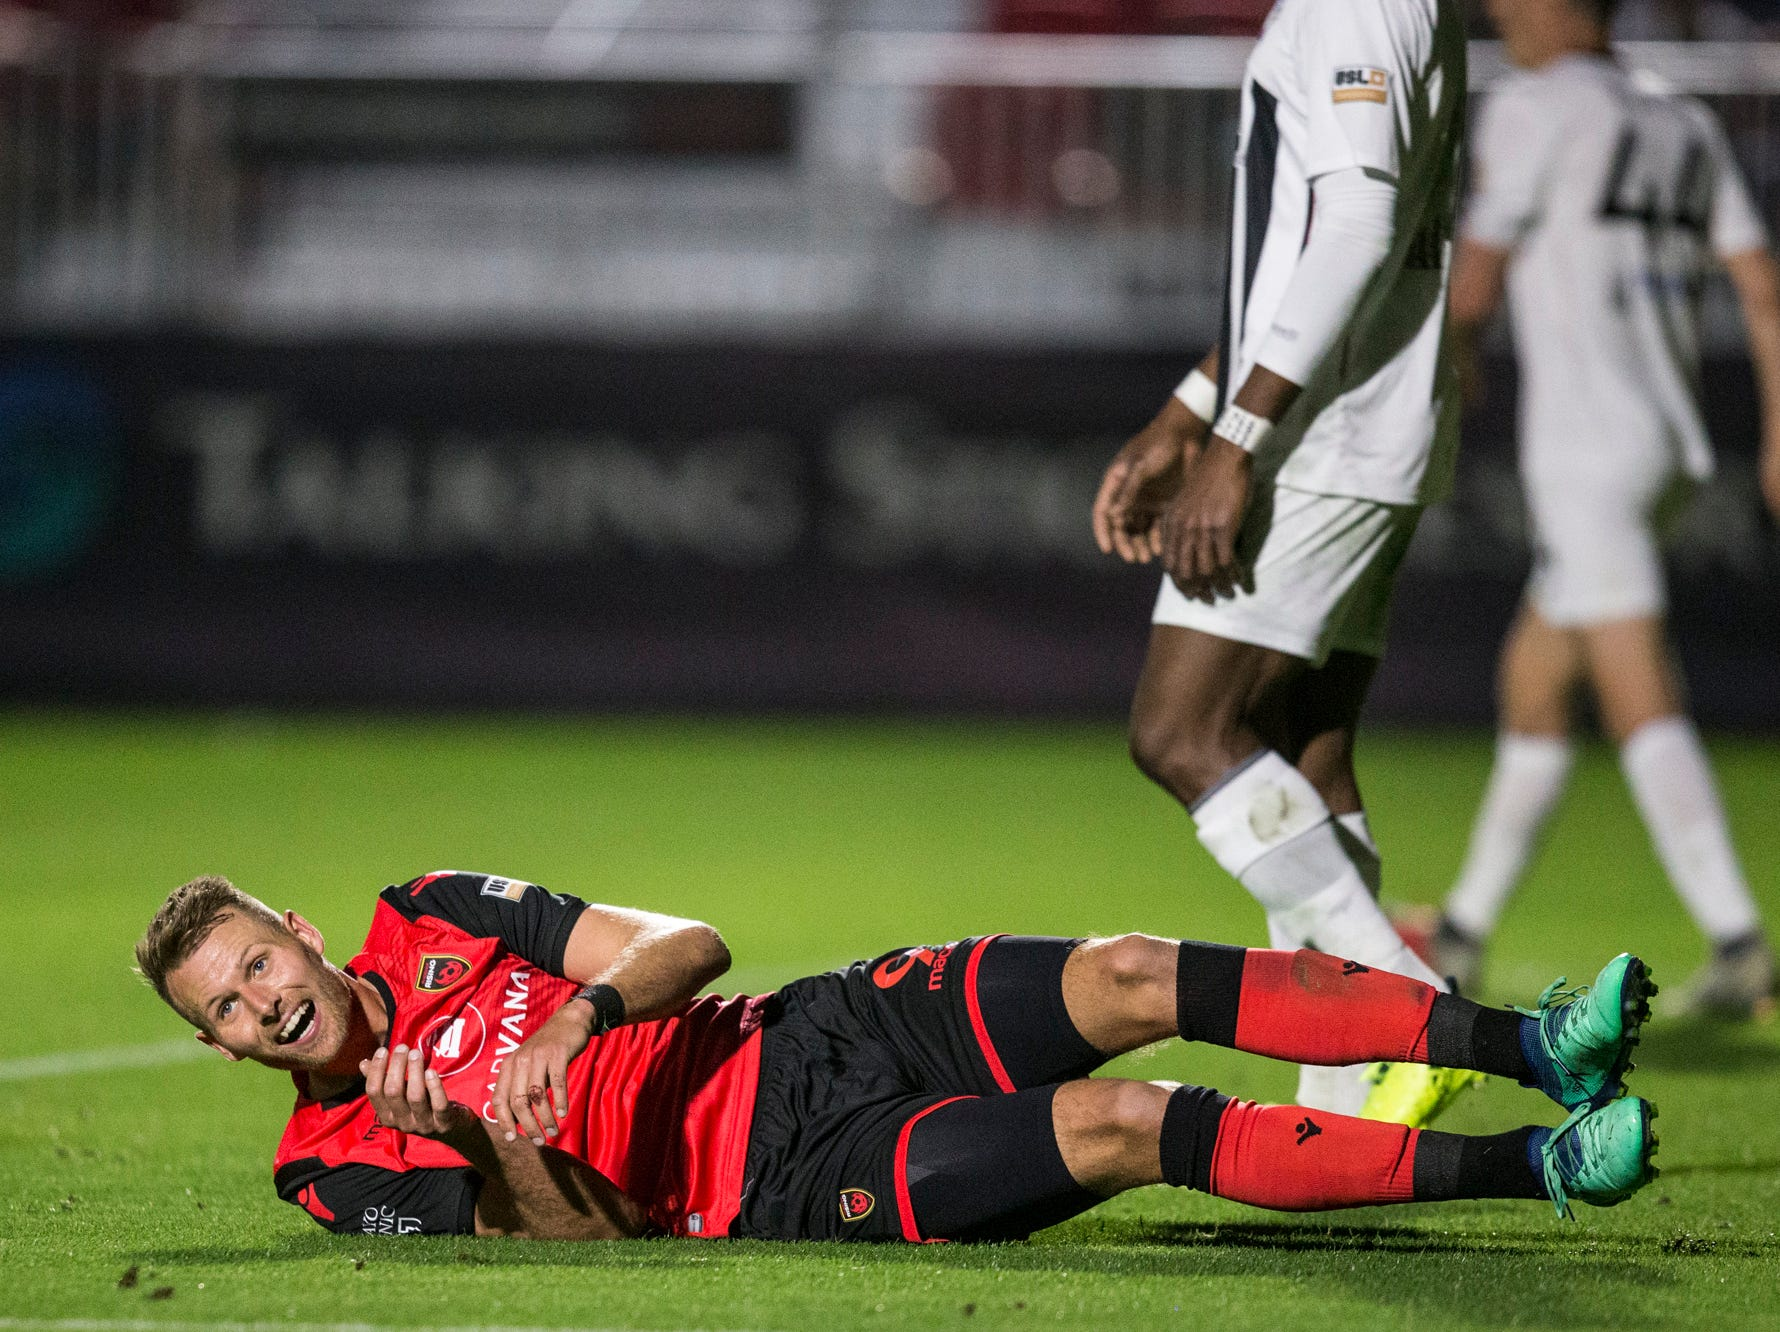 Phoenix Rising's Adam Jahn reacts after missing a shot against Colorado Springs in the second half on Saturday, Mar. 30, 2019, at Casino Arizona Field in Tempe, Ariz.